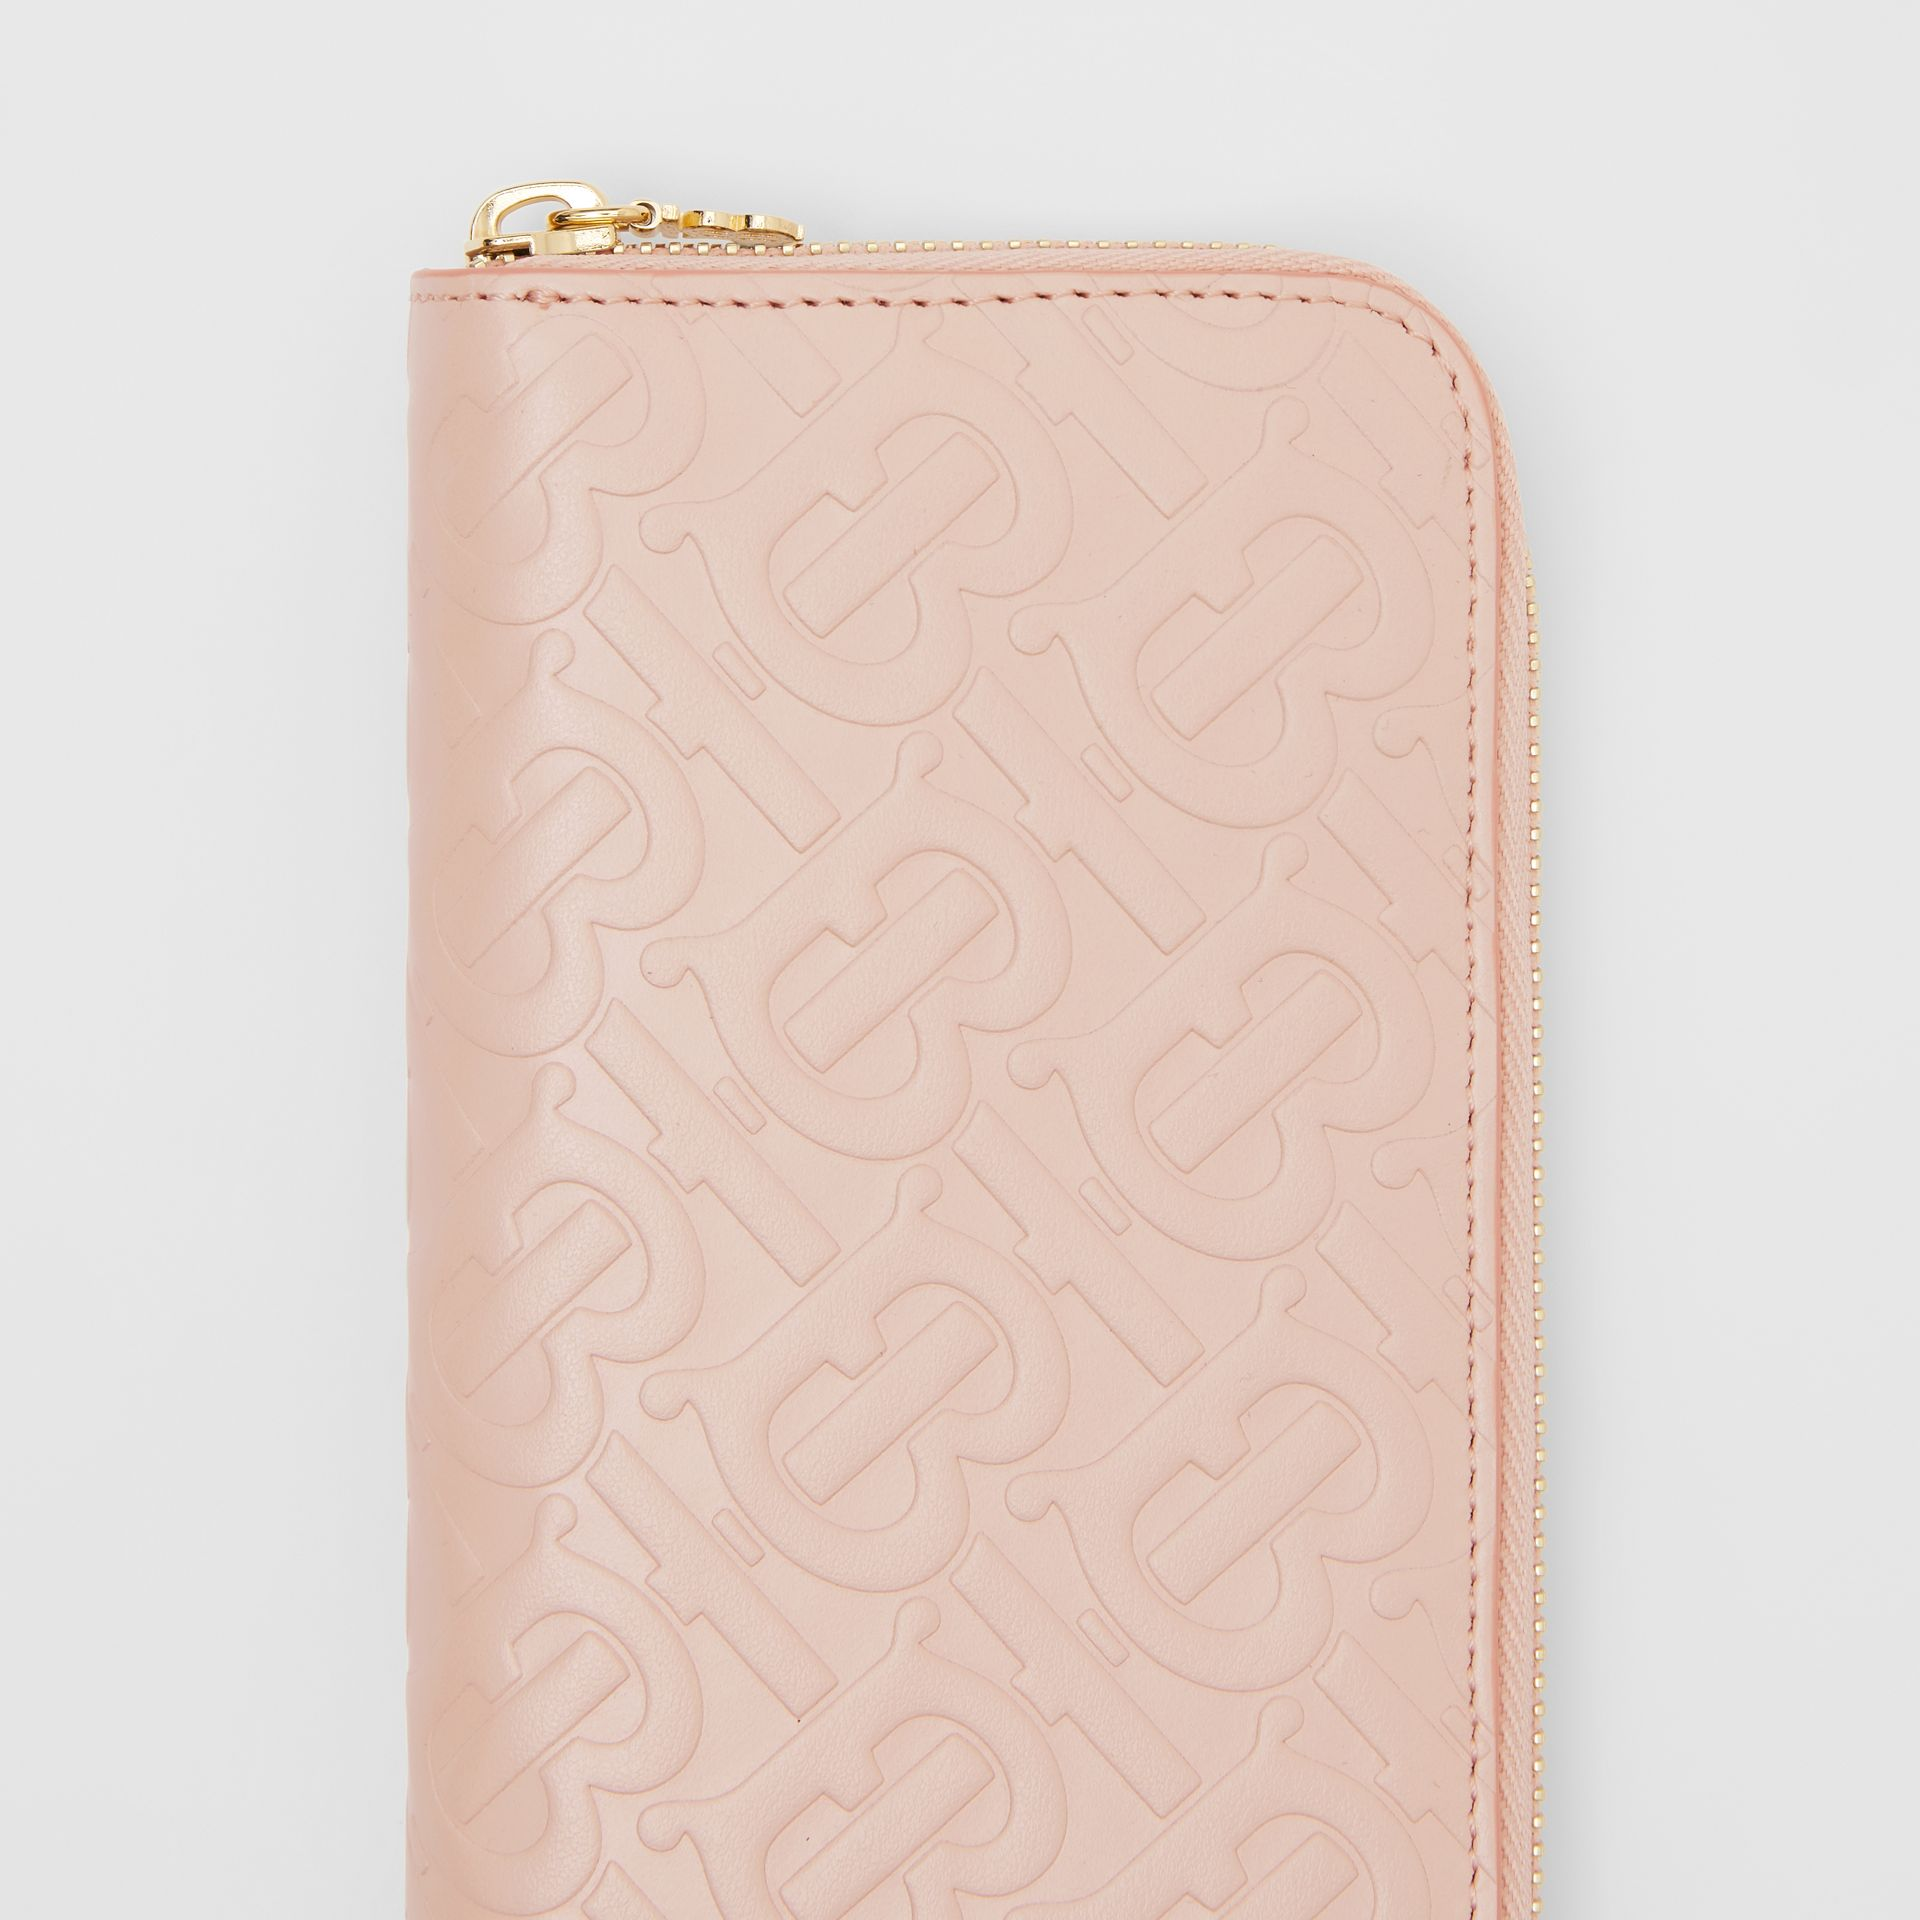 Monogram Leather Ziparound Wallet in Rose Beige - Women | Burberry - gallery image 1